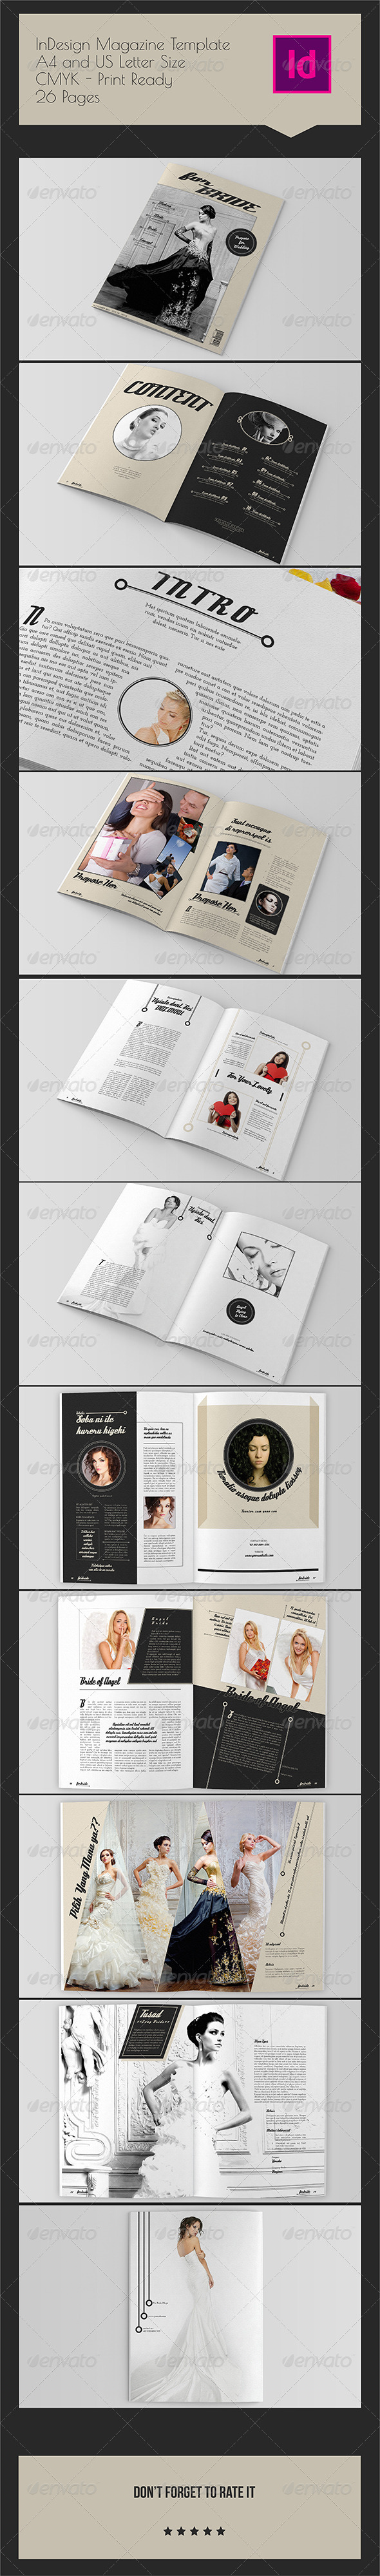 GraphicRiver InDesign Magazine Template 26 Pages 8048103